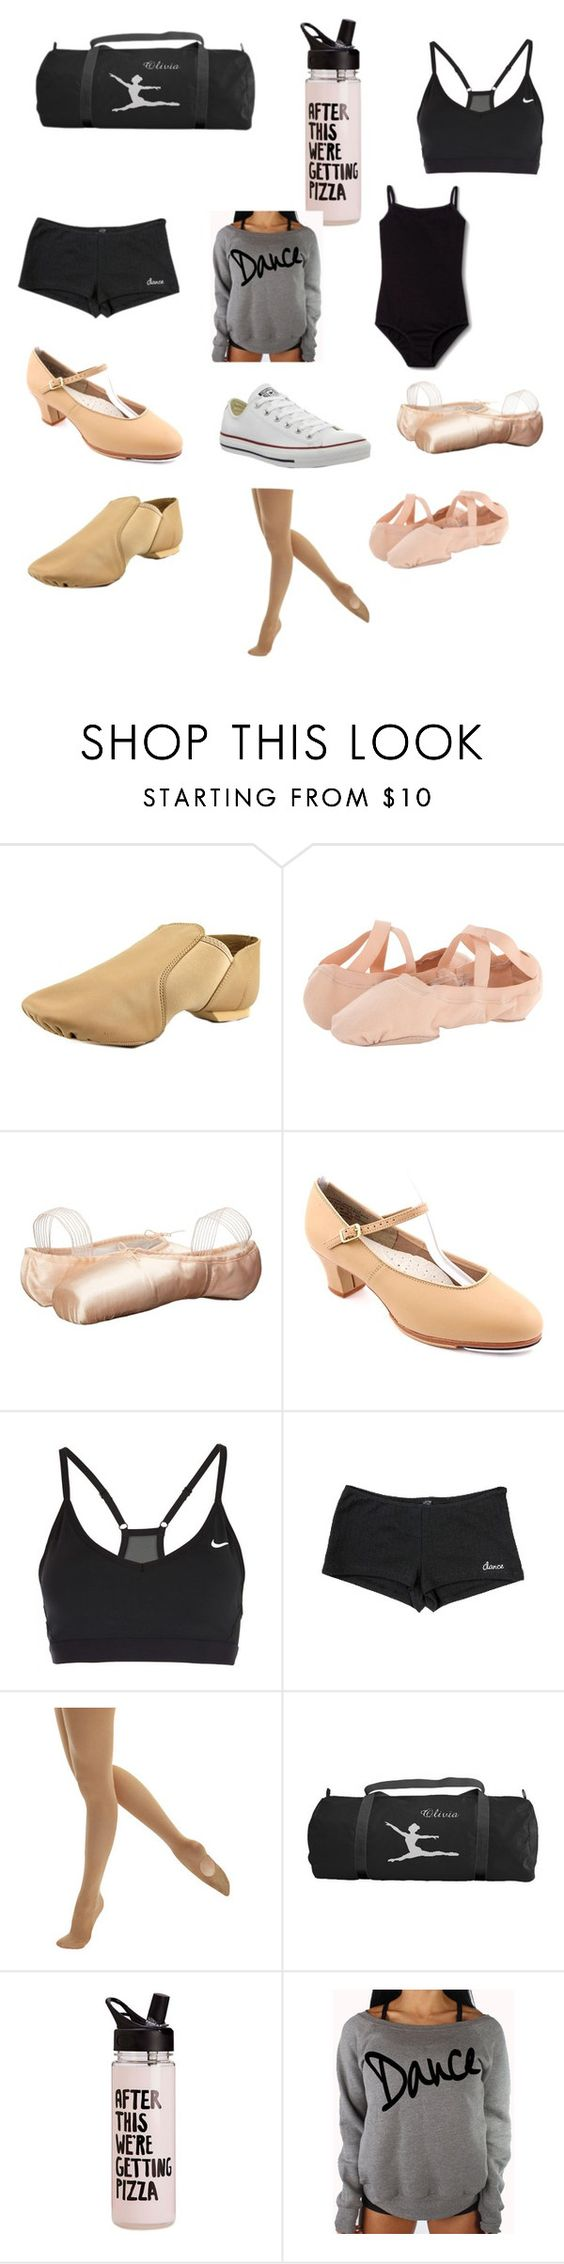 """Dance Bag Essentials"" by montrosewilson ❤ liked on Polyvore featuring Capezio, Bloch, Sansha, NIKE, Danshuz and Converse"